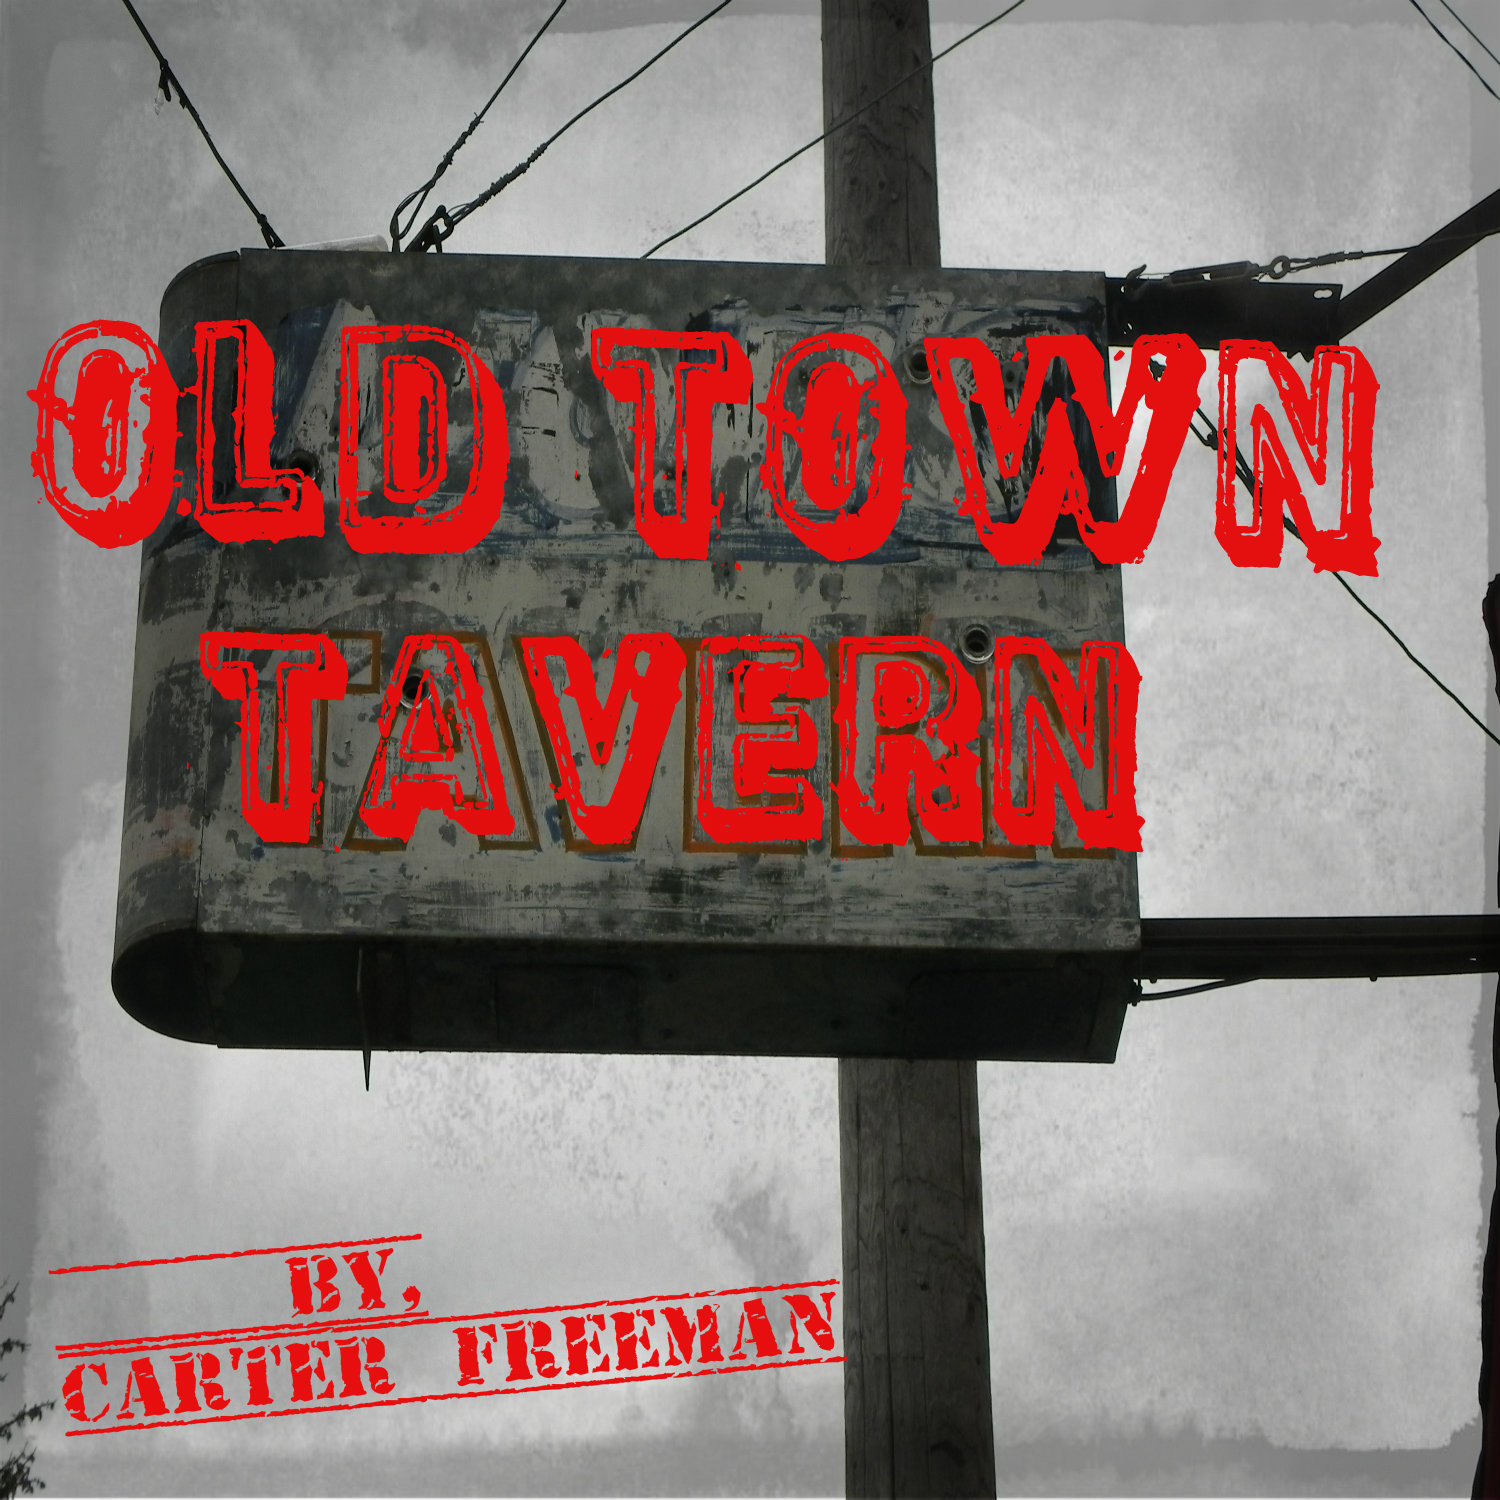 Carter Freeman - Old Town Tavern